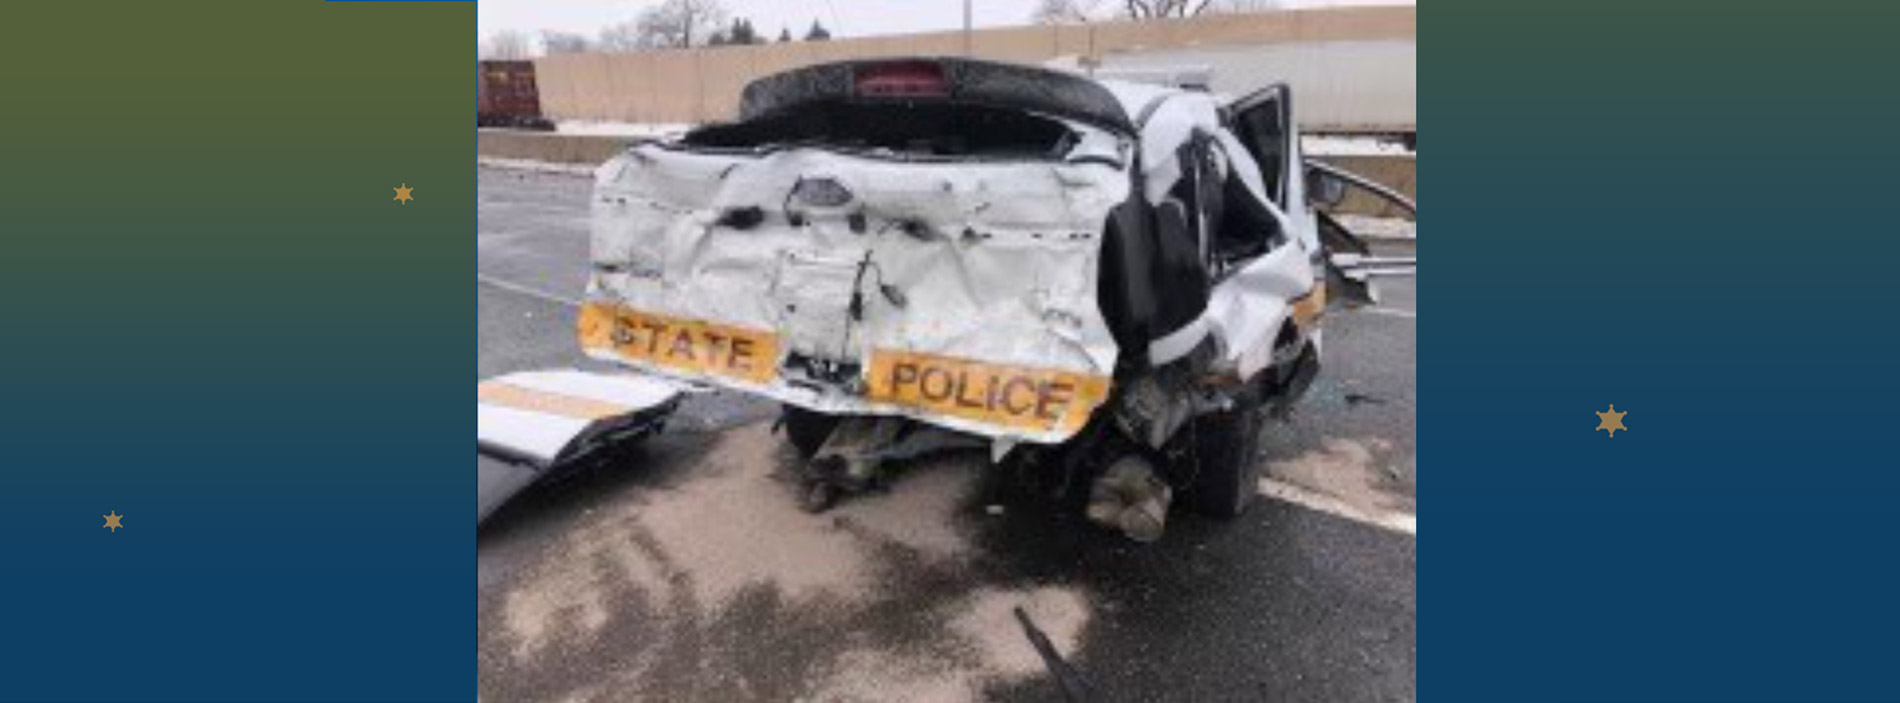 Illinois State Police - trooper injured in accident - donate to help.